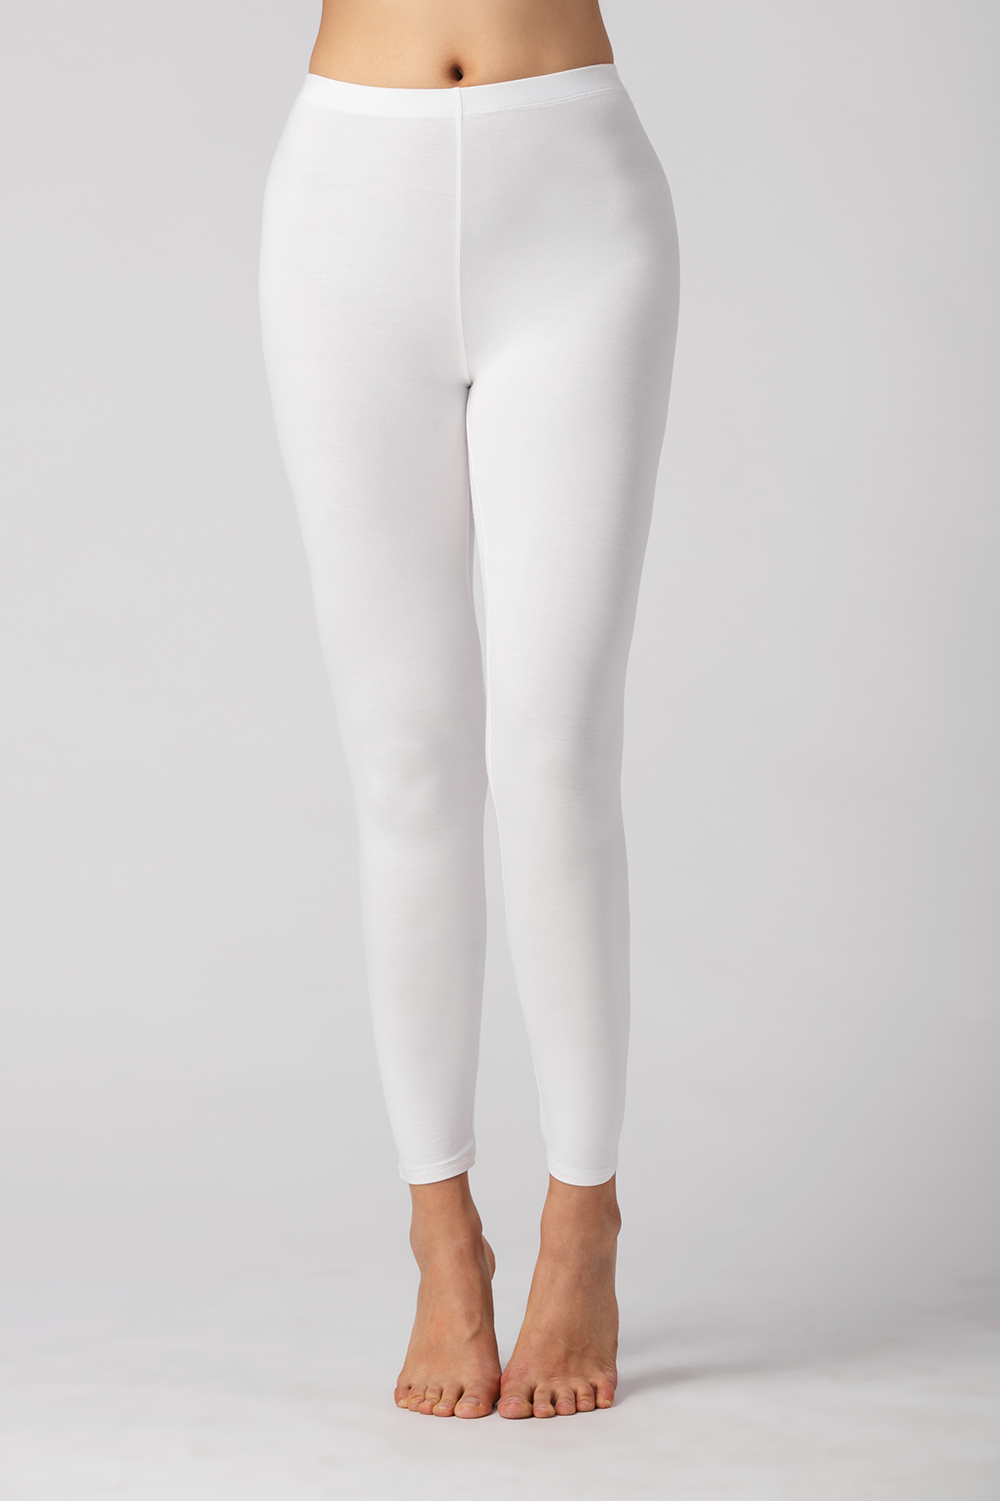 Suri Bamboo Leggings are comfortable, flexible and breathable. Made with oh-so-soft Viscose from Bamboo, this is a great gift for yourself, family or friends. Lightweight yet opaque, they are great to pair with a tunic, tank, t-shirt or blouse. You will Love your Suri Bamboo Leggings. Colour White 94% Viscose from Bamboo, 6% Spandex